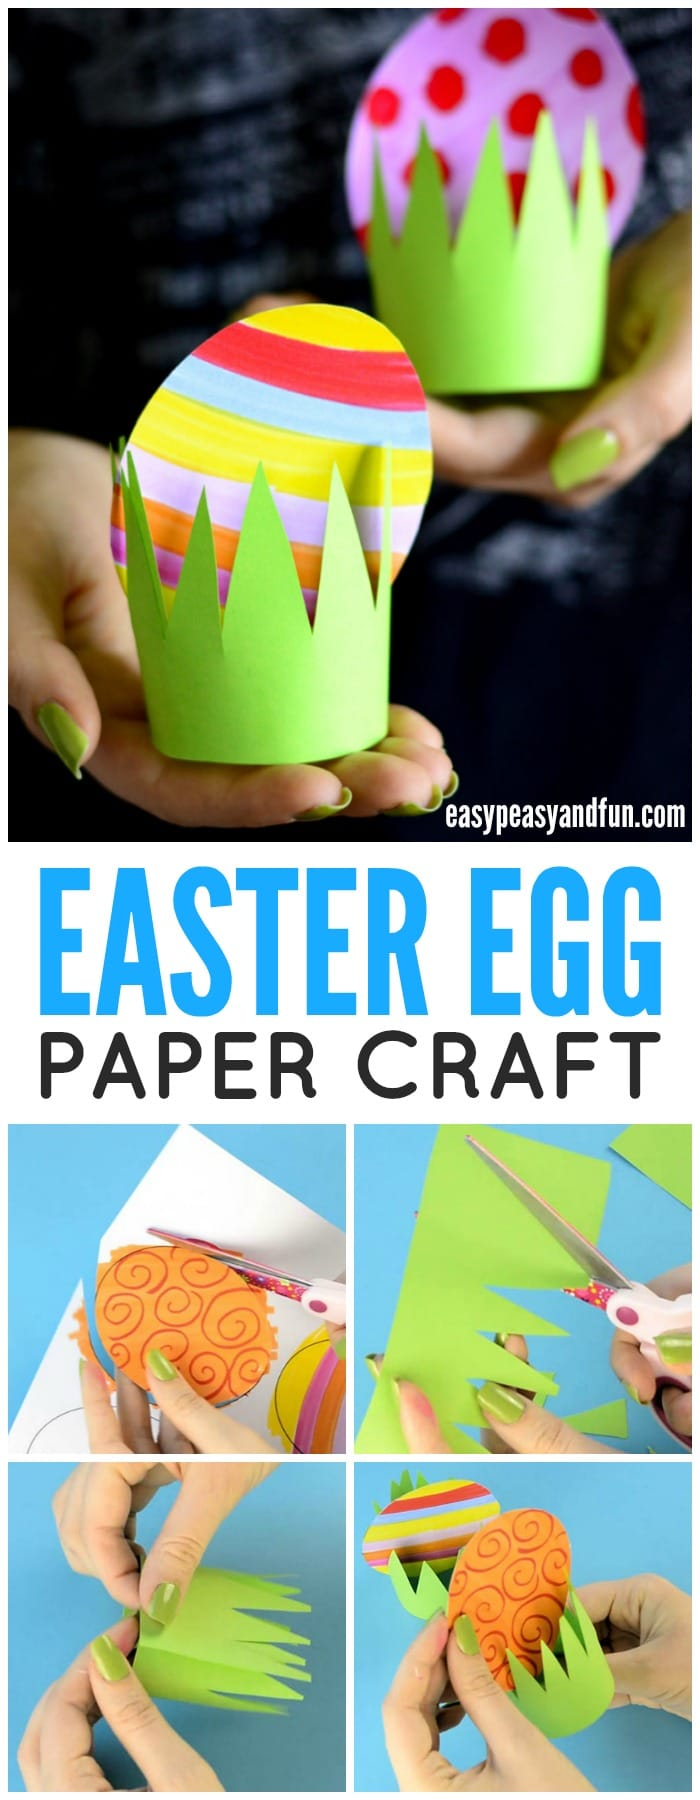 Paper easter egg craft idea easy peasy and fun for Crafts for kids to make